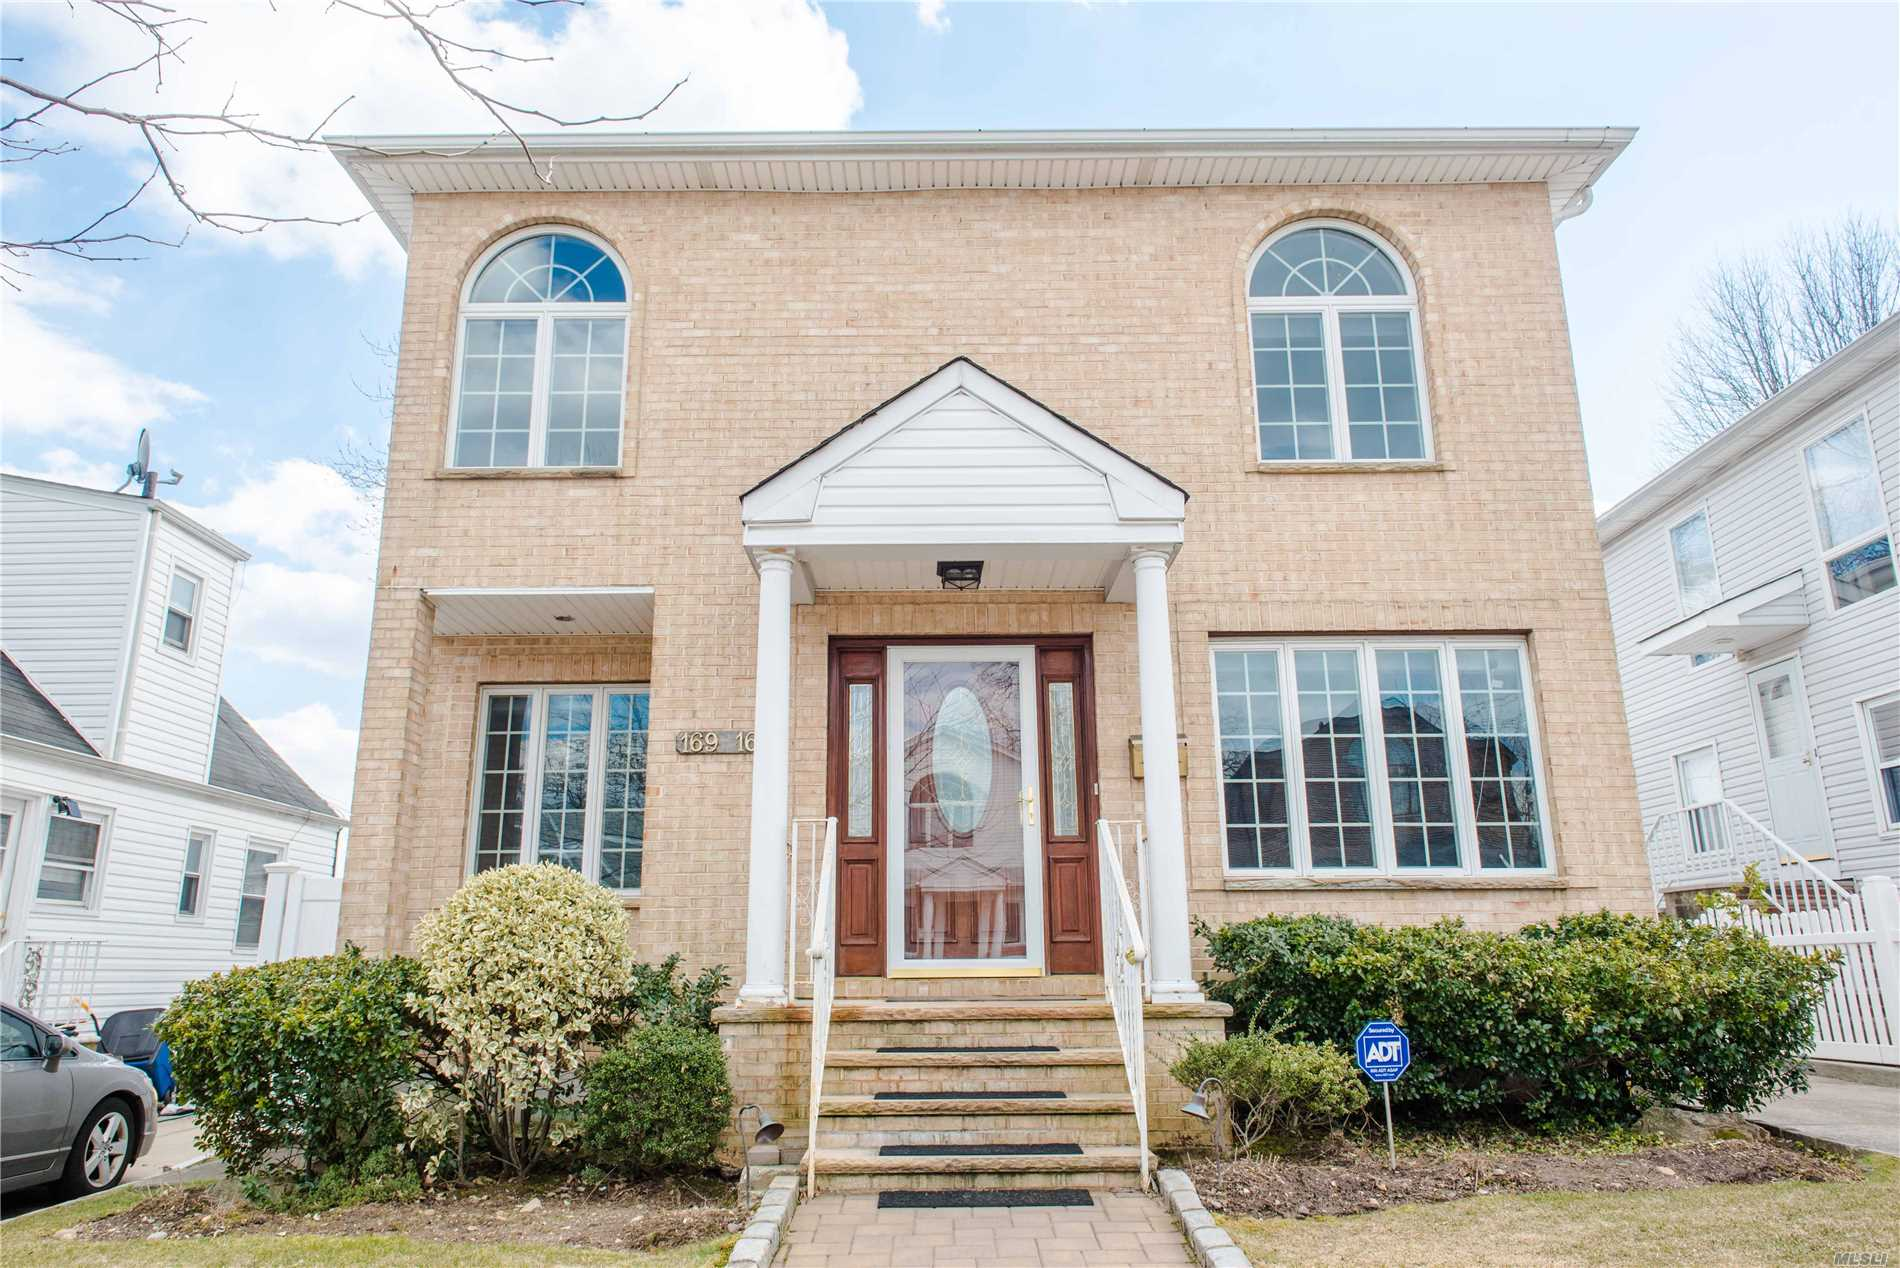 Look no further! Beautiful one family in the heart of Whitestone featuring four large bedrooms, three full baths and 1 half bath, family room, fully finished basement. Property features long driveway with a beautiful backyard privately fenced. Close to shopping center and highway! Must See